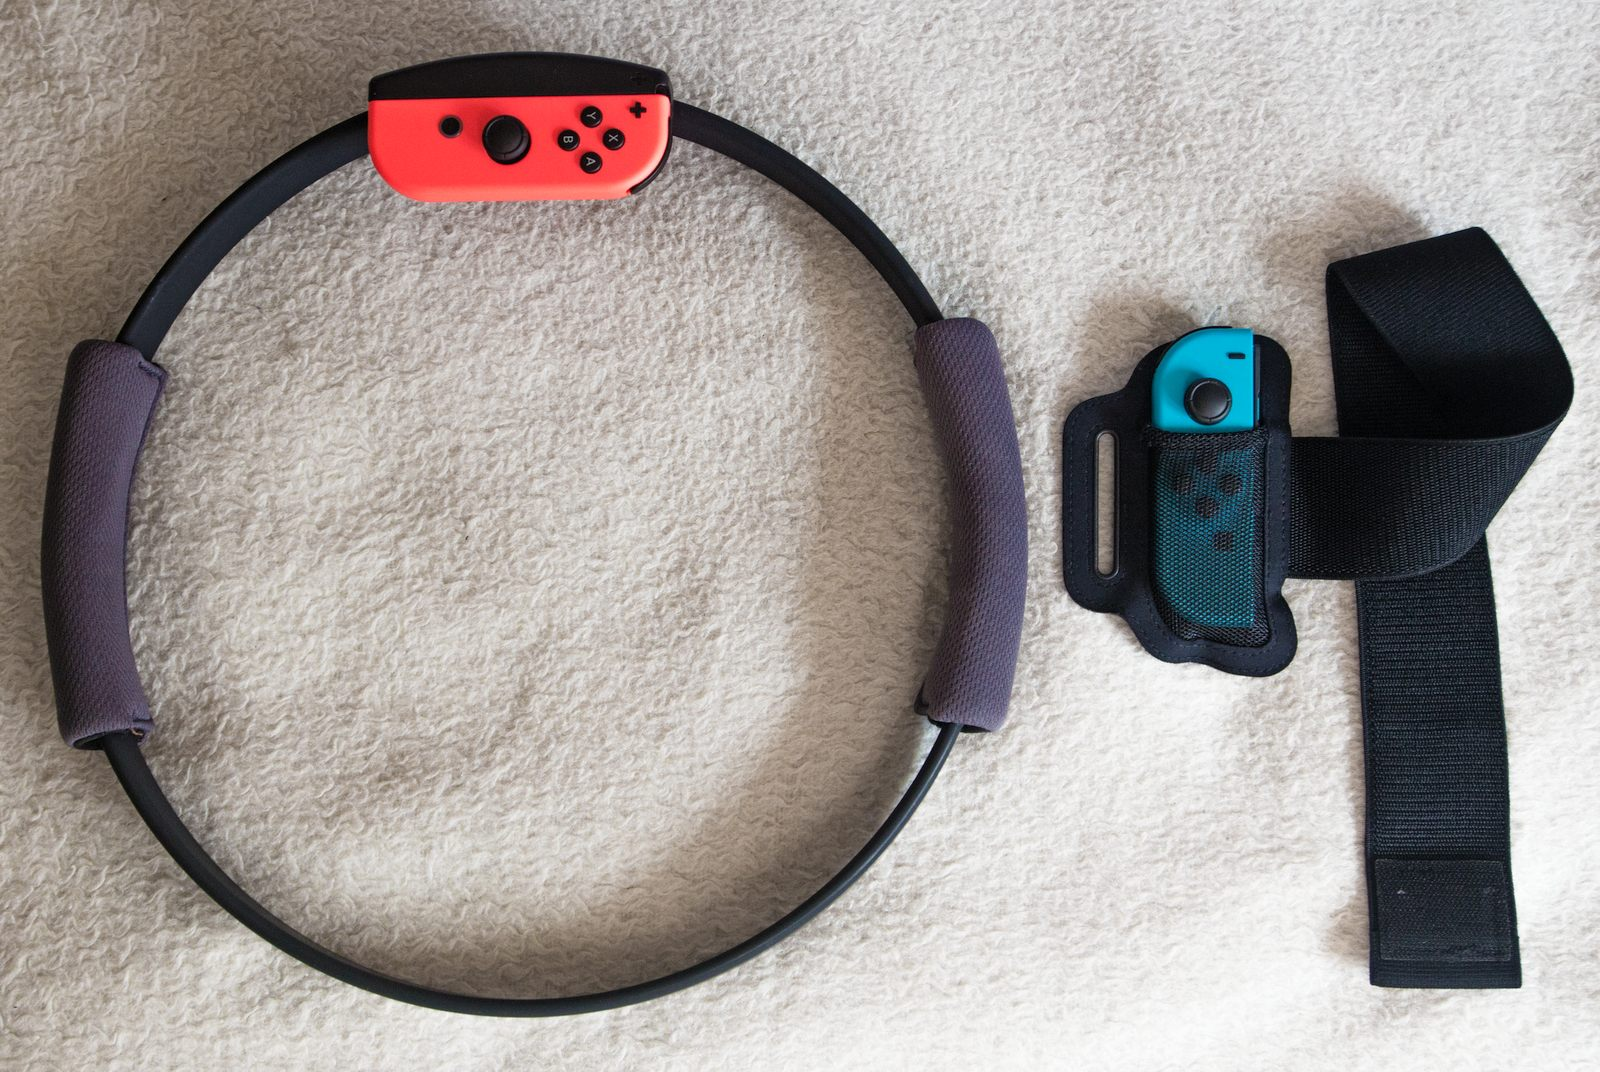 ring-fit-adventure-controller